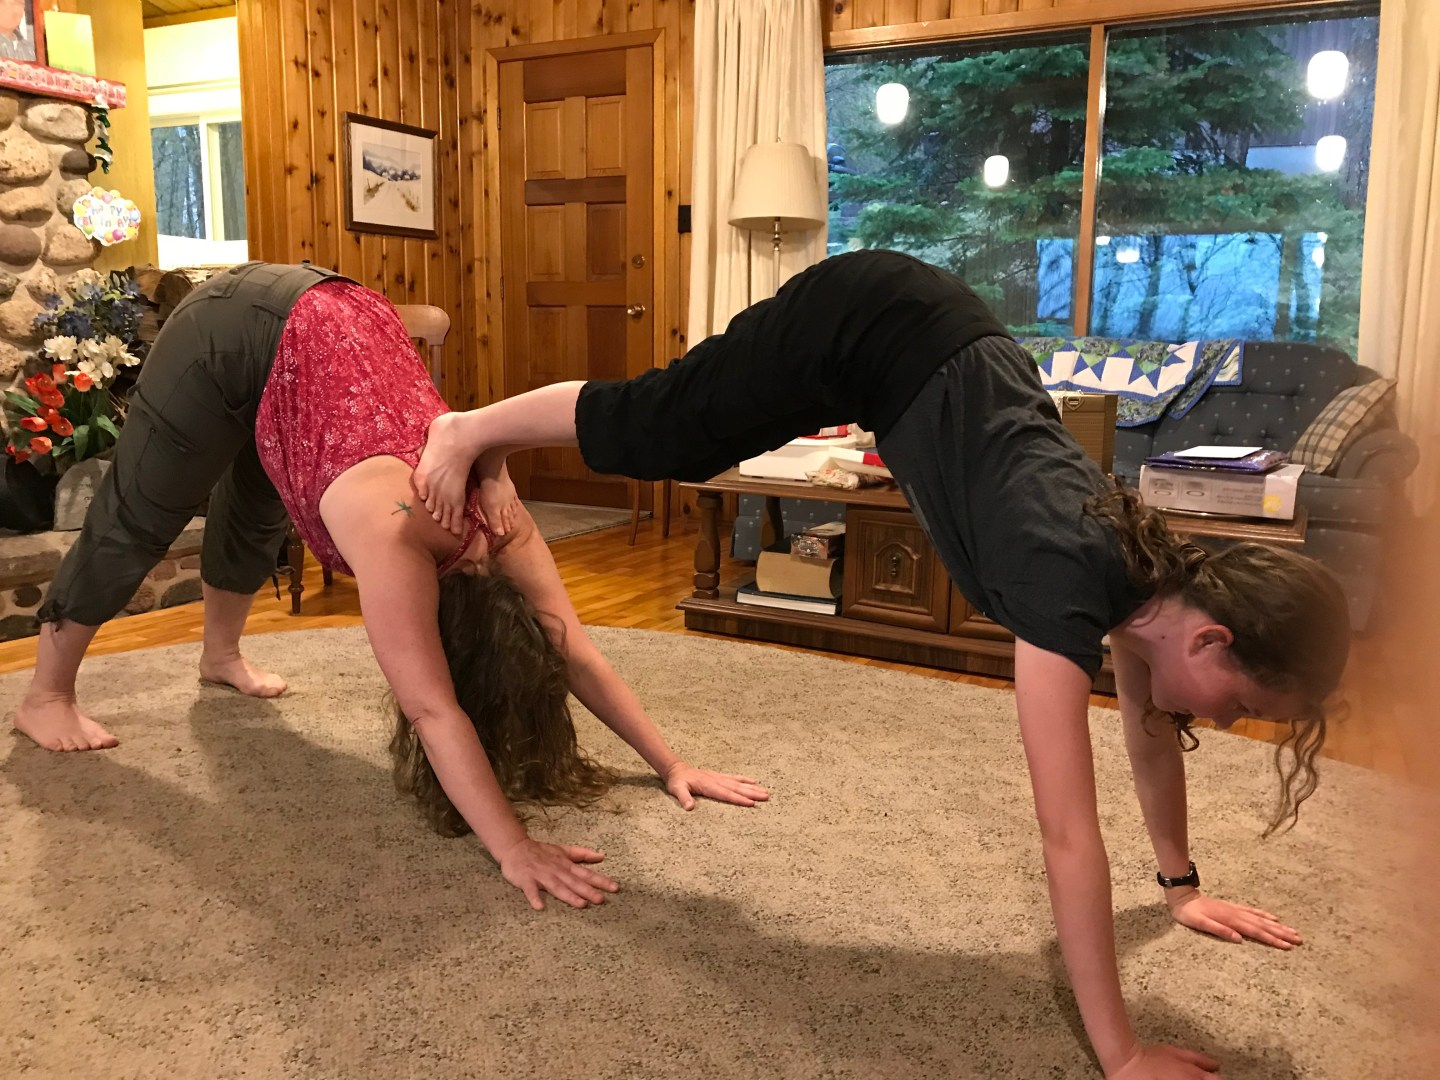 me and my daughter in downward dog pose